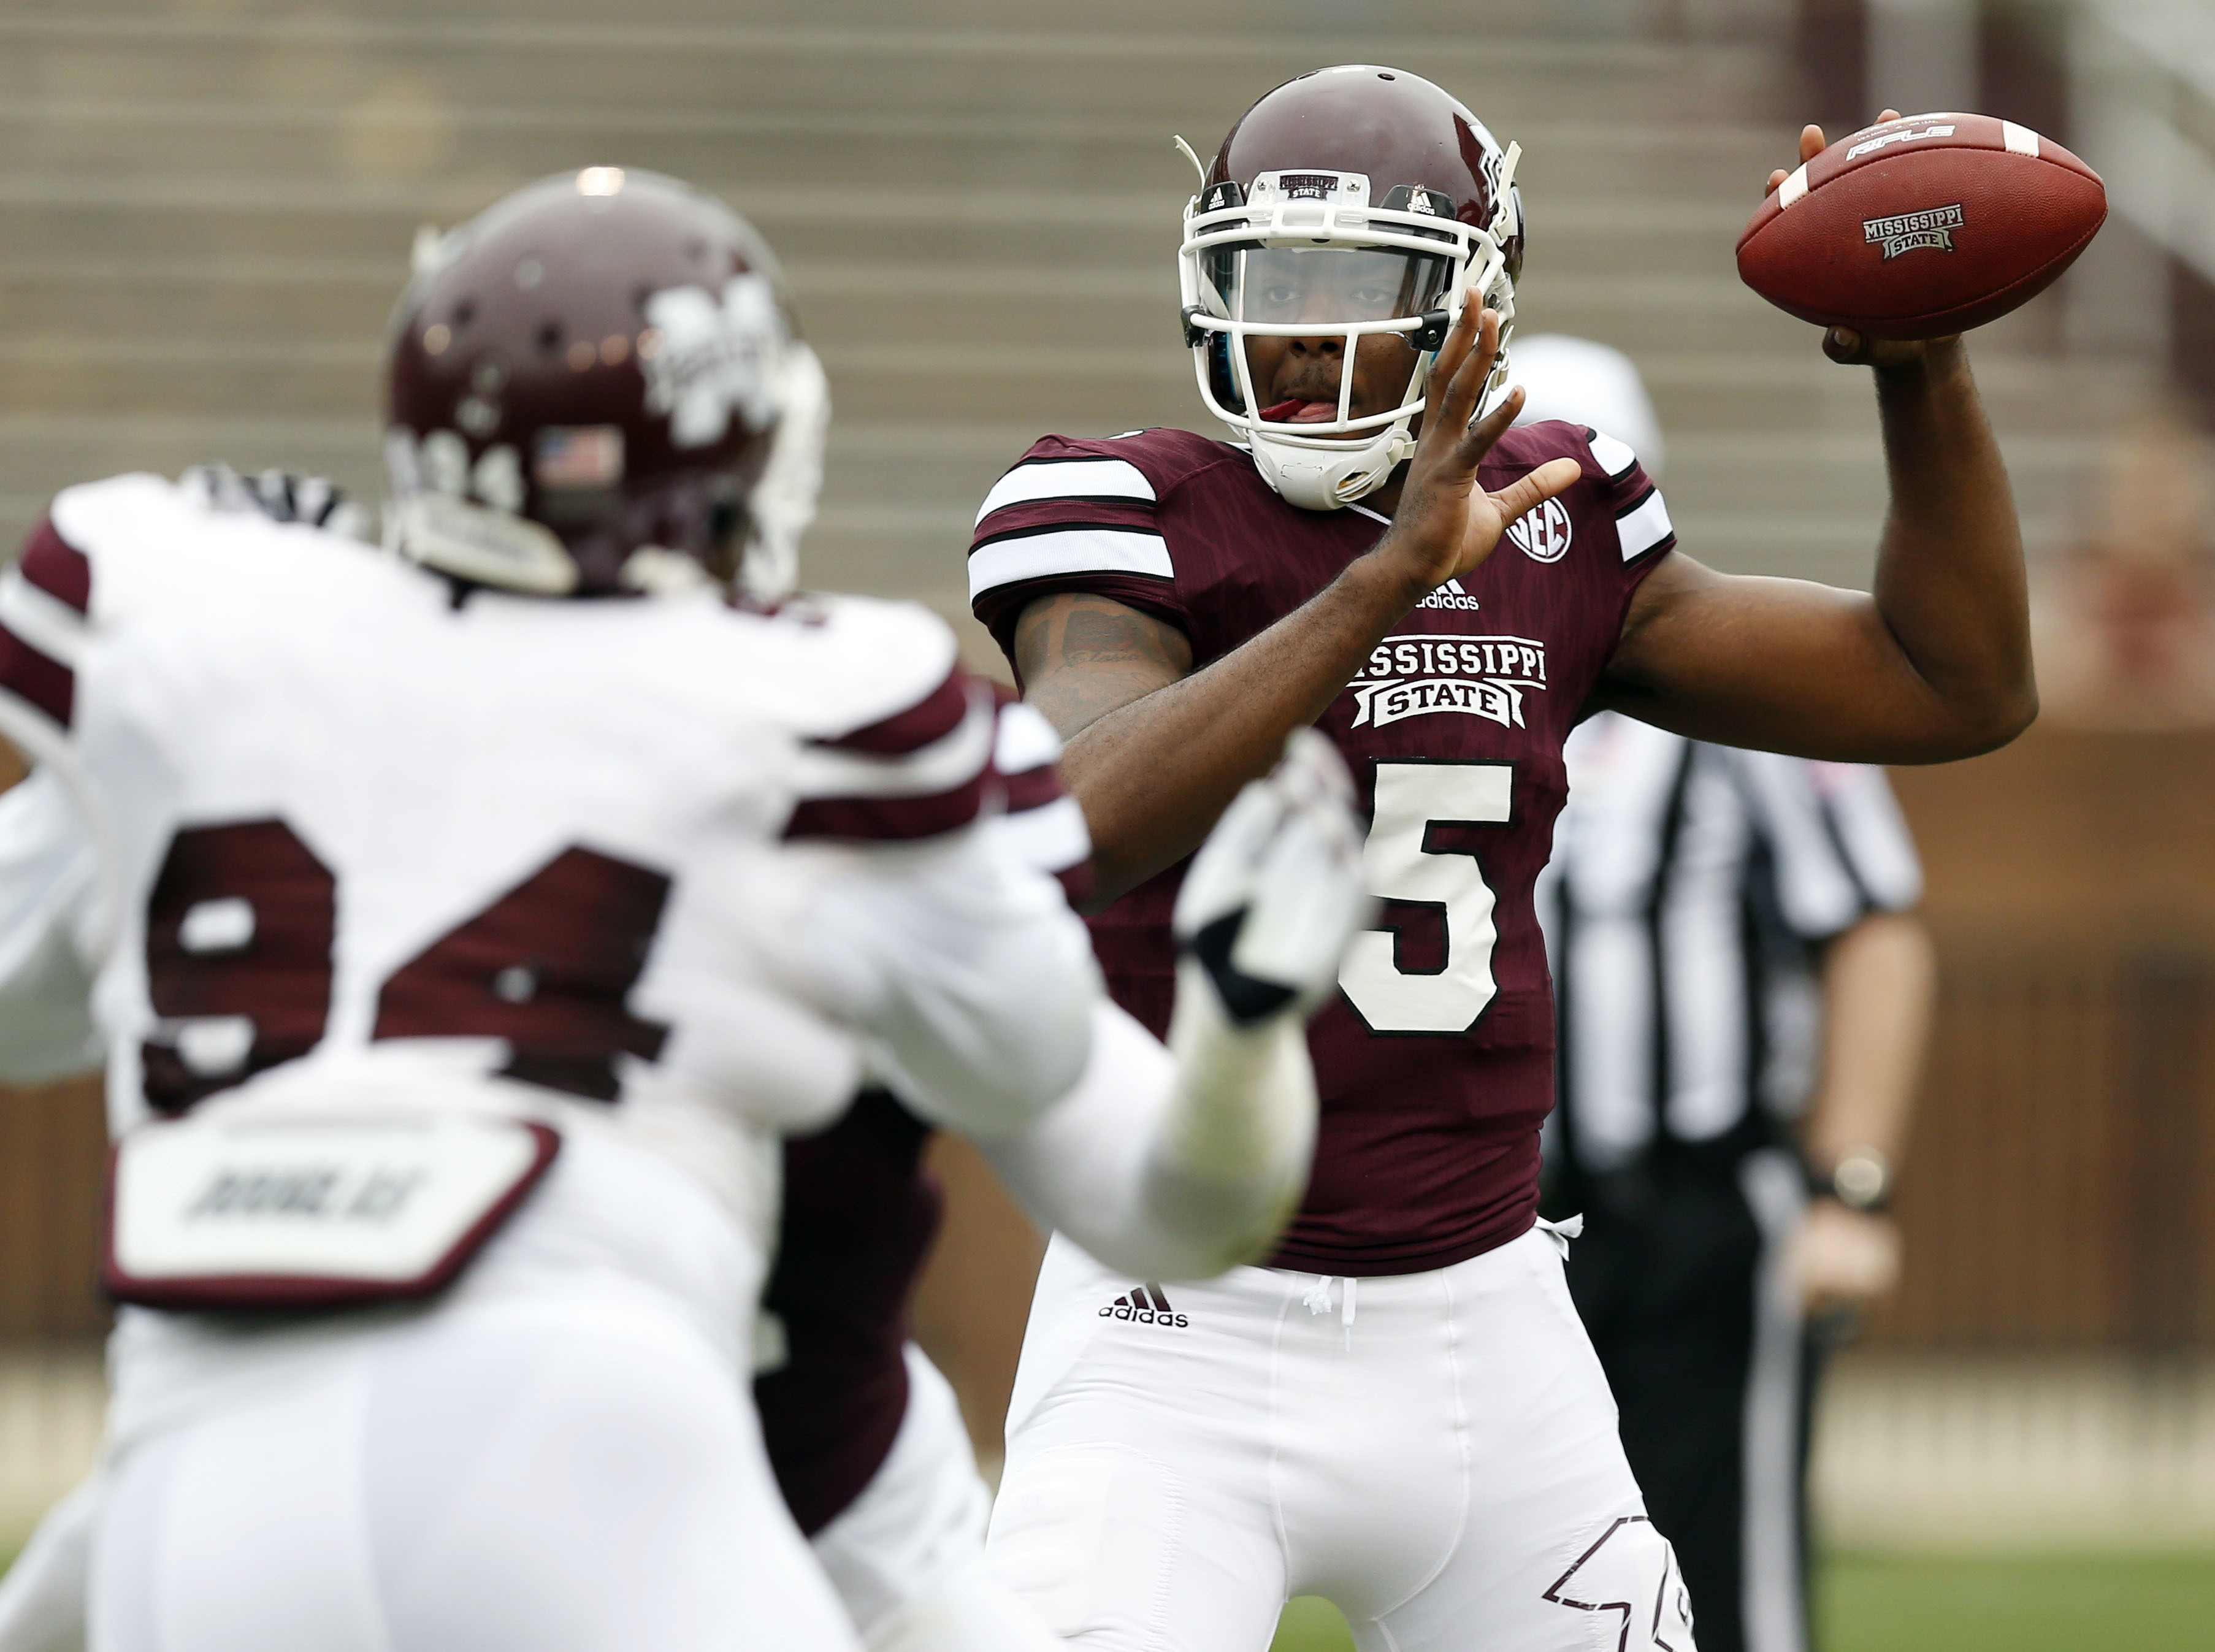 Mississippi State Maroon squad quarterback Elijah Staley (5) sets up to pass against the White squad during the second half of a spring NCAA college football game, Saturday, April 16, 2015, in Starkville, Miss. Maroon won 34-21. (AP Photo/Rogelio V. Solis